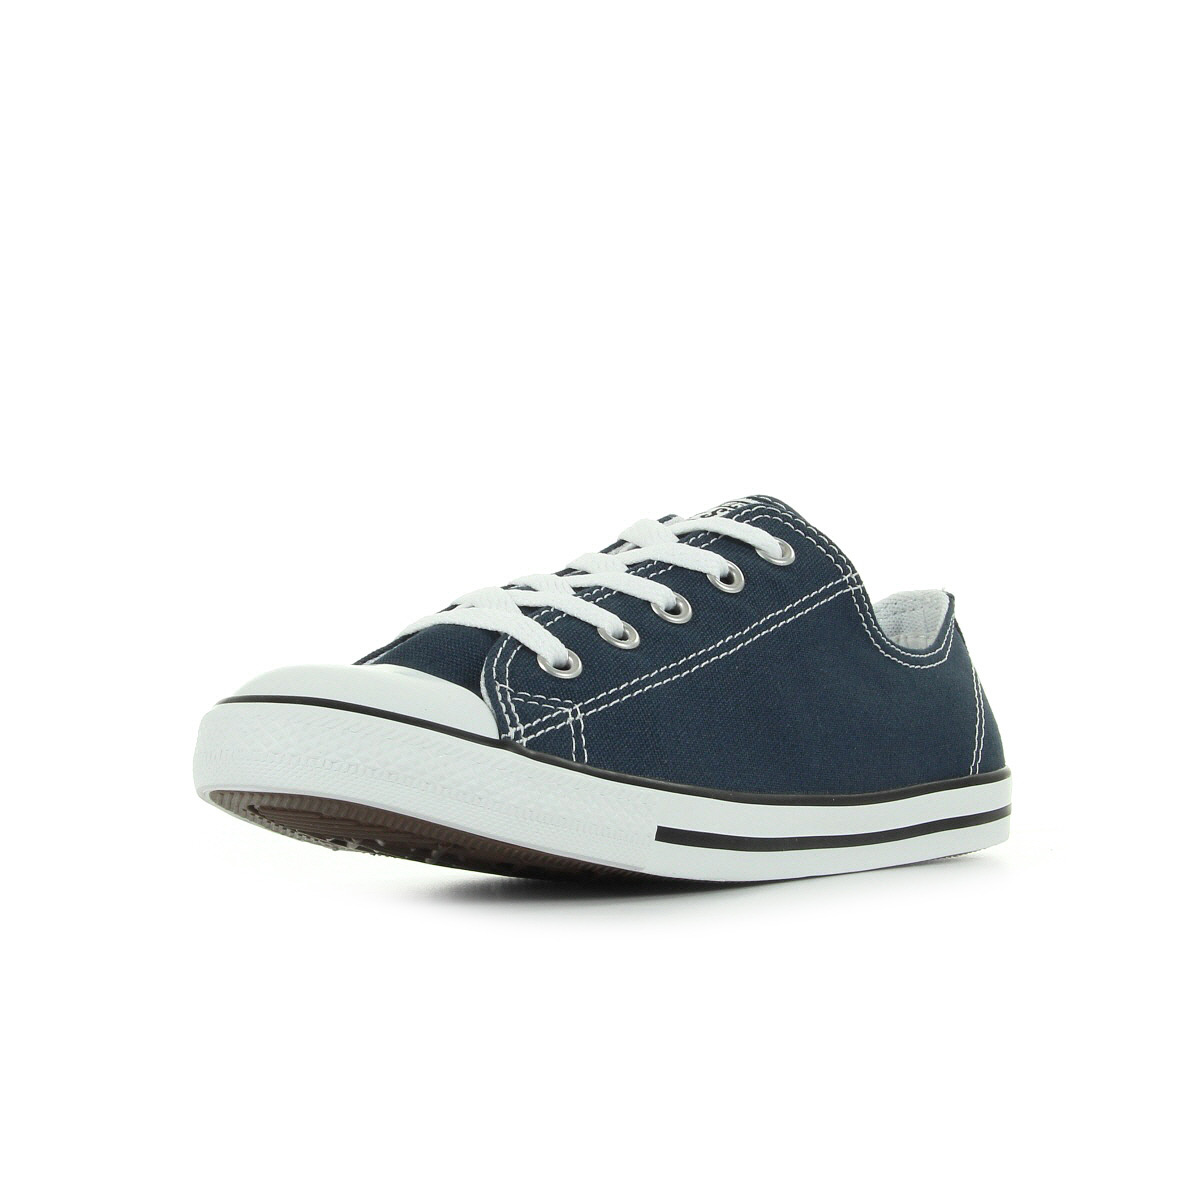 shoes Baskets Converse femme CT Dainty ox size blue marine bluee Textile